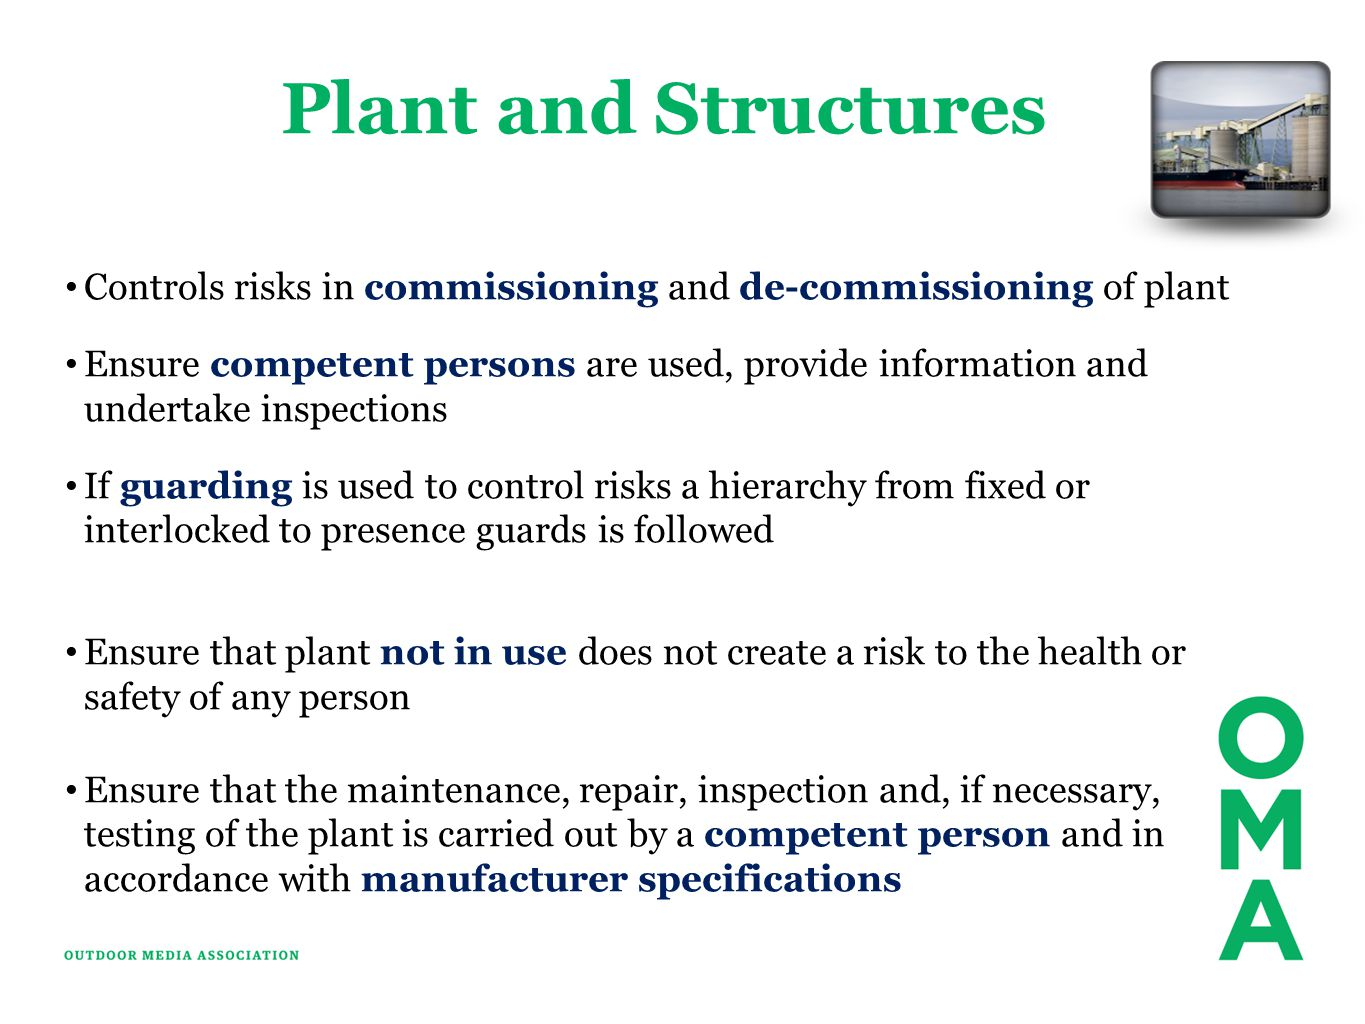 Plant and Structures Controls risks in commissioning and de-commissioning of plant.